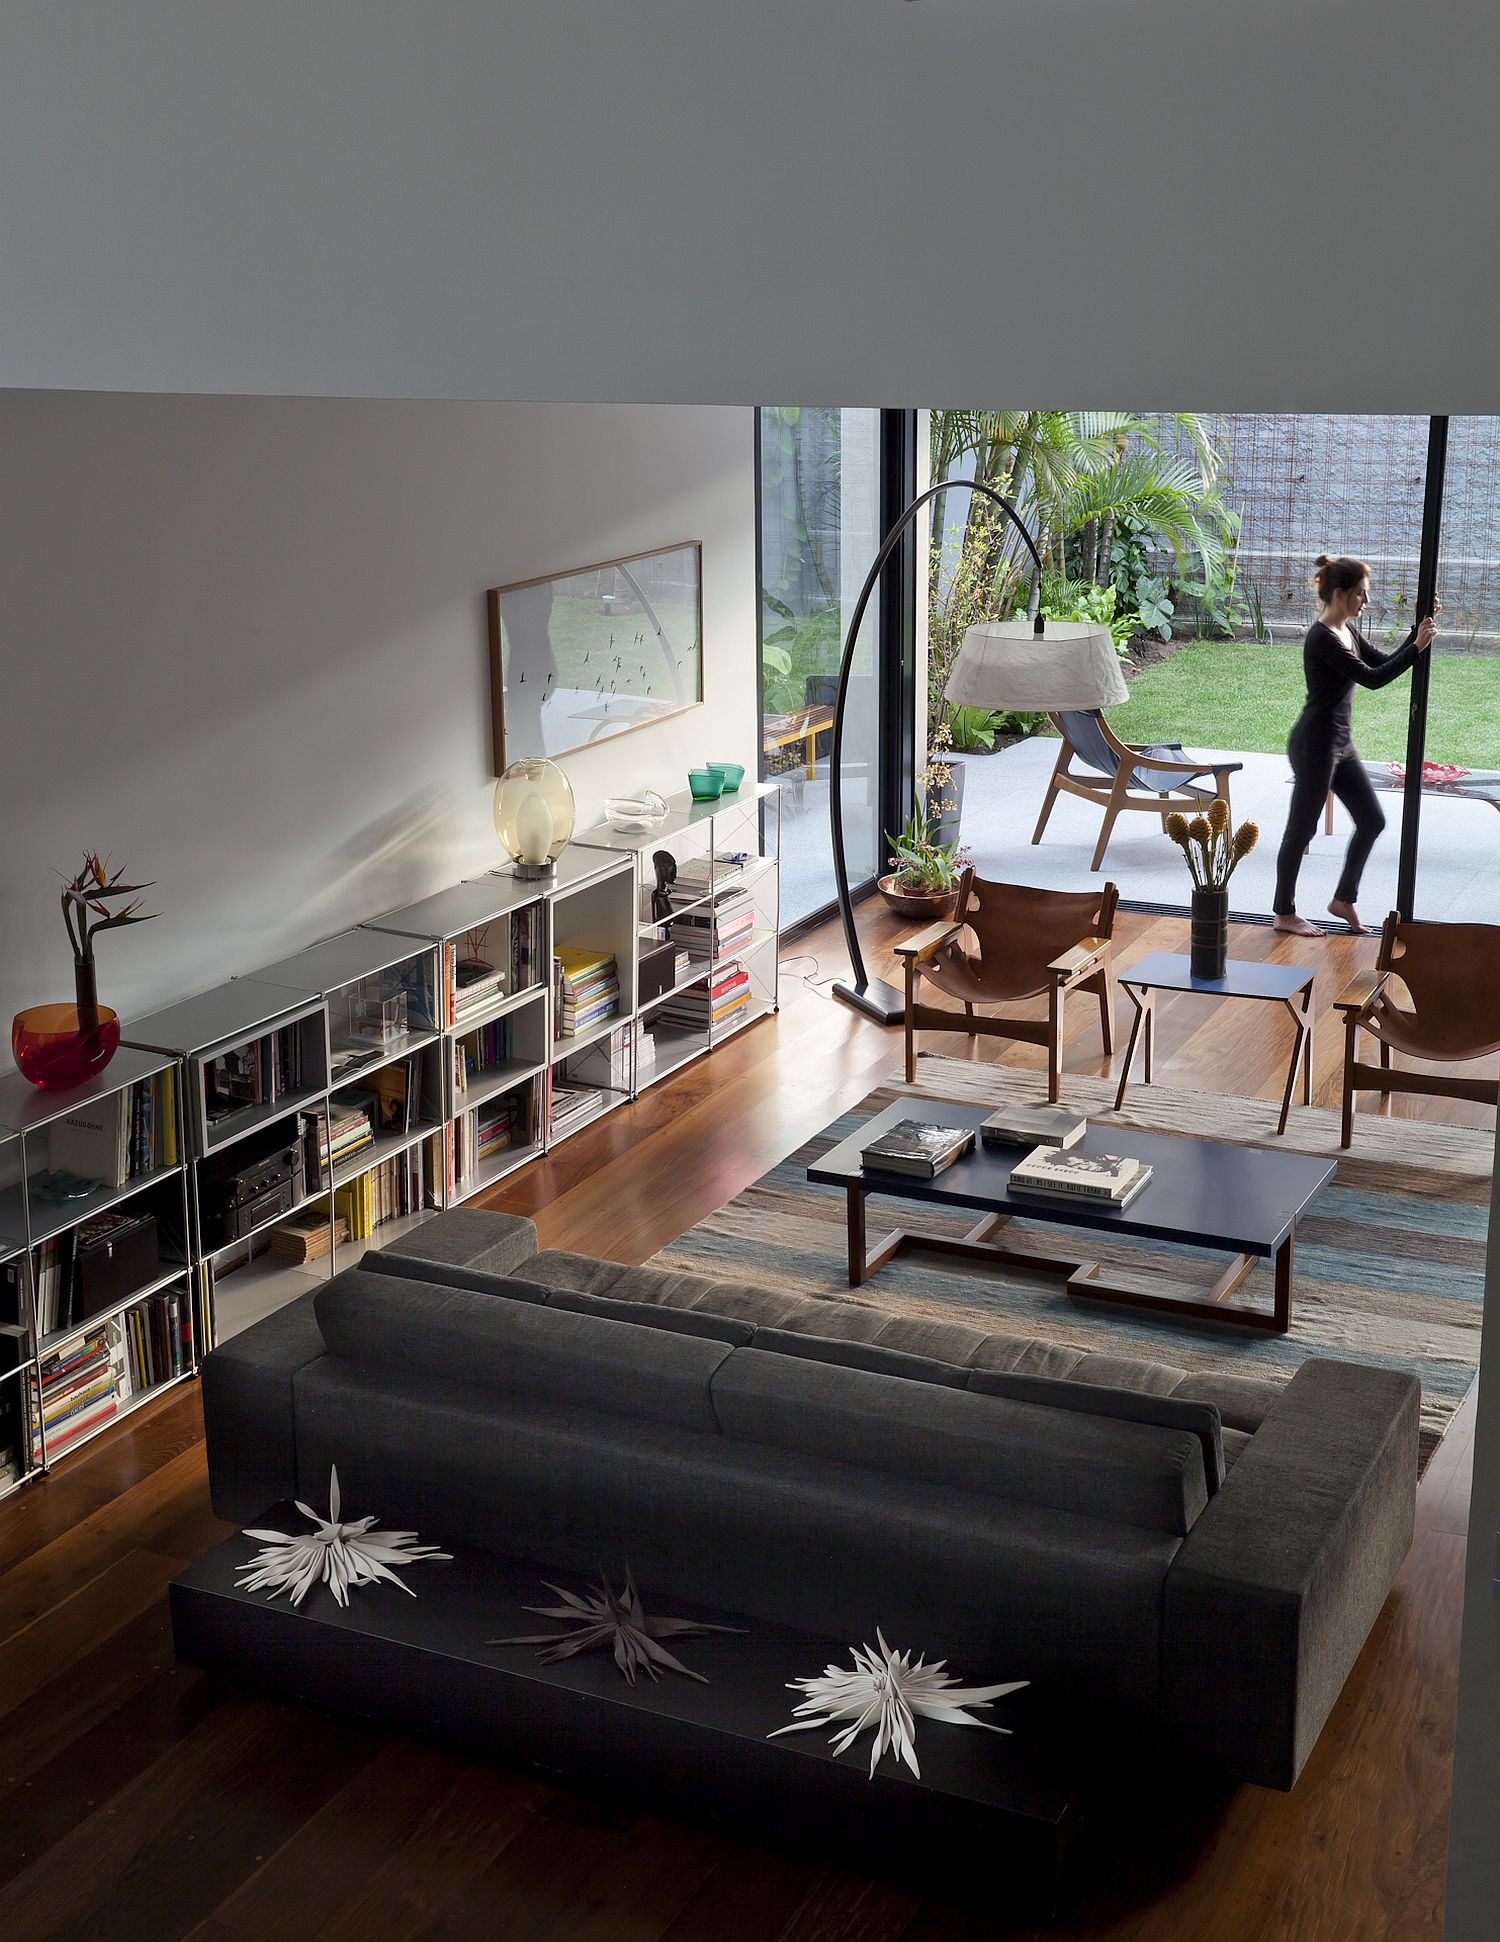 Living room of the Sao Paulo home with modern couch and space-savvy bookshelves